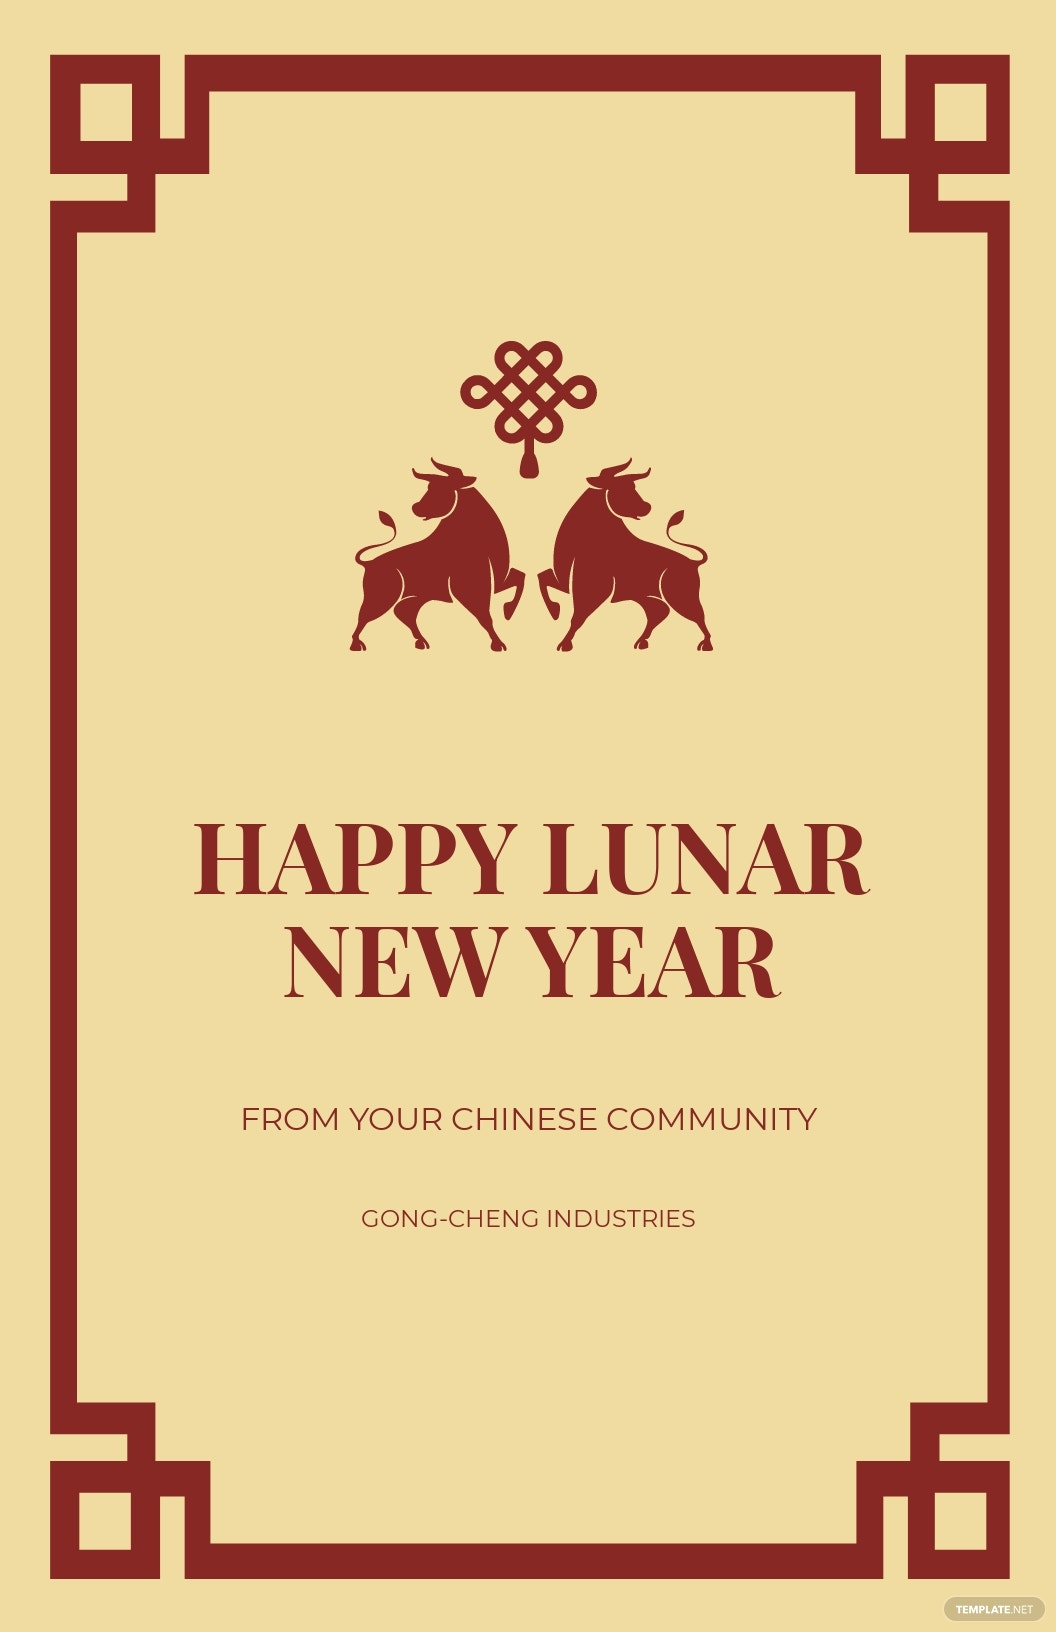 Vintage Chinese New Year Poster Template.jpe